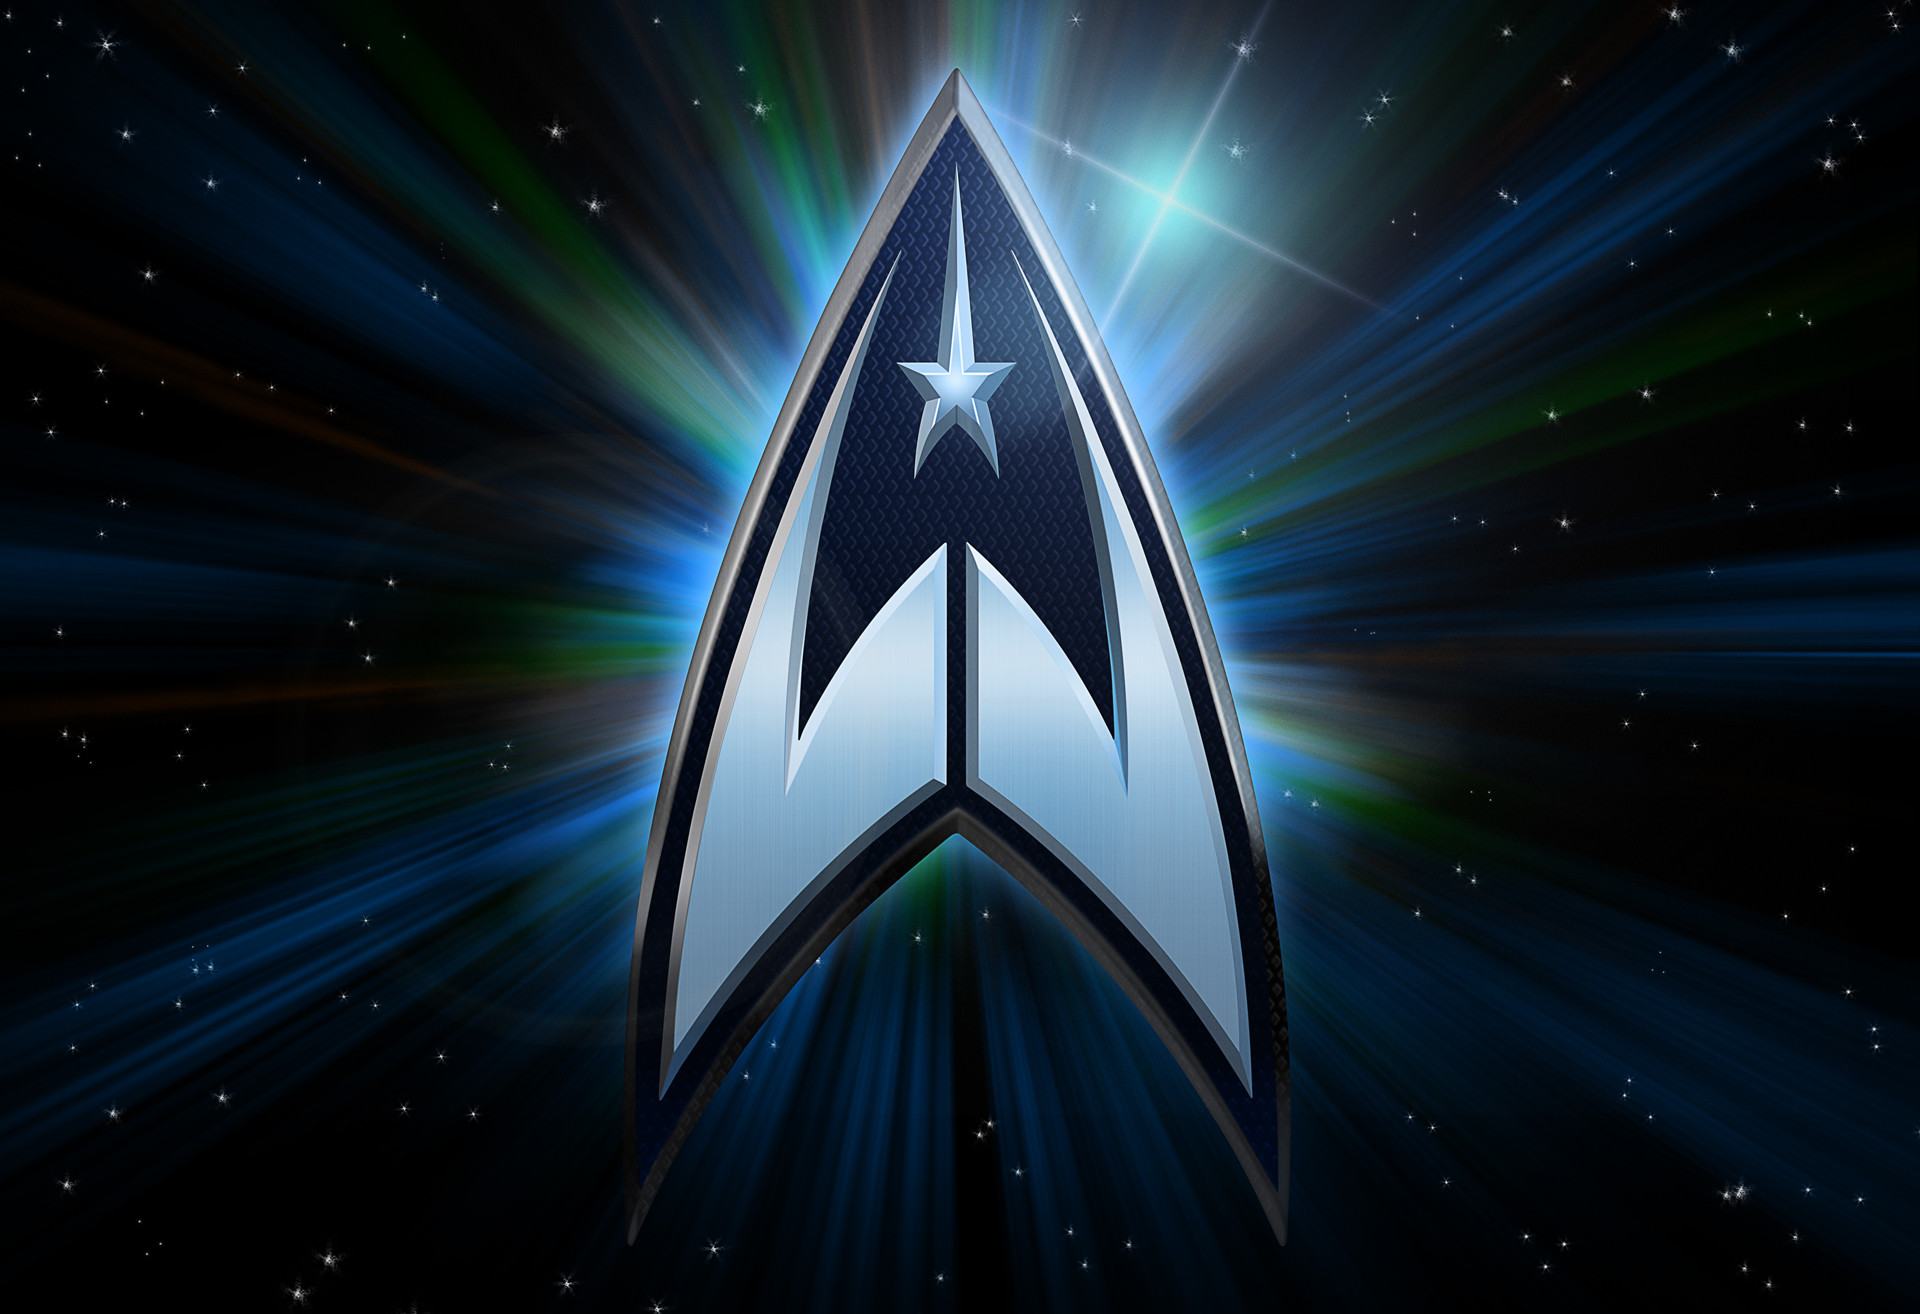 Klingon  Star Trek Wallpaper 15486280  Fanpop